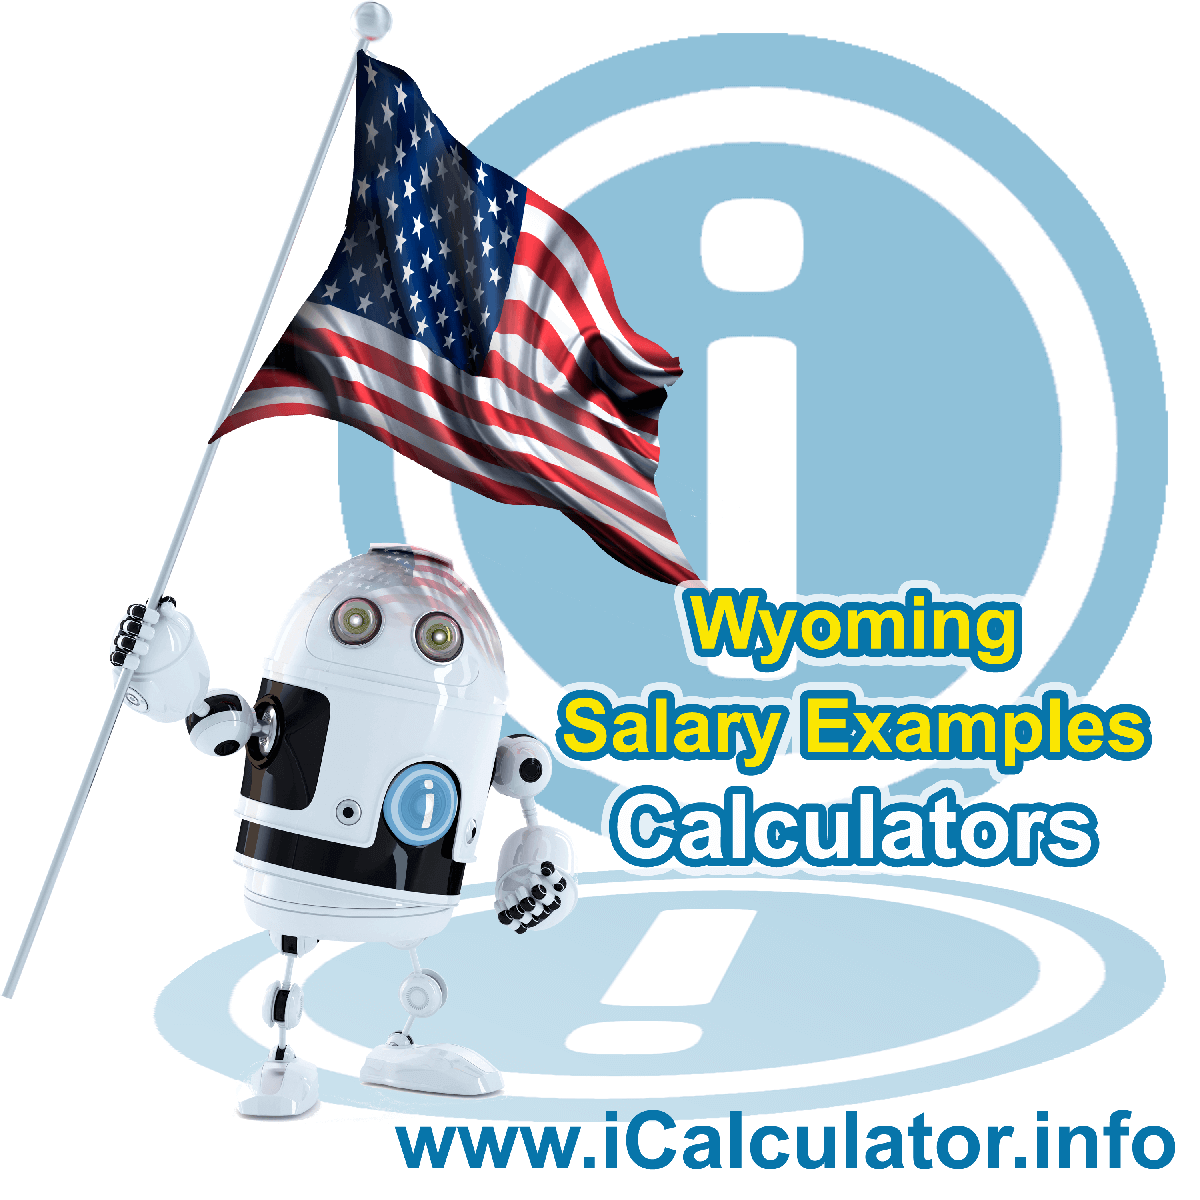 Wyoming Salary Example for $160.00 in 2020 | iCalculator | $160.00 salary example for employee and employer paying Wyoming State tincome taxes. Detailed salary after tax calculation including Wyoming State Tax, Federal State Tax, Medicare Deductions, Social Security, Capital Gains and other income tax and salary deductions complete with supporting Wyoming state tax tables